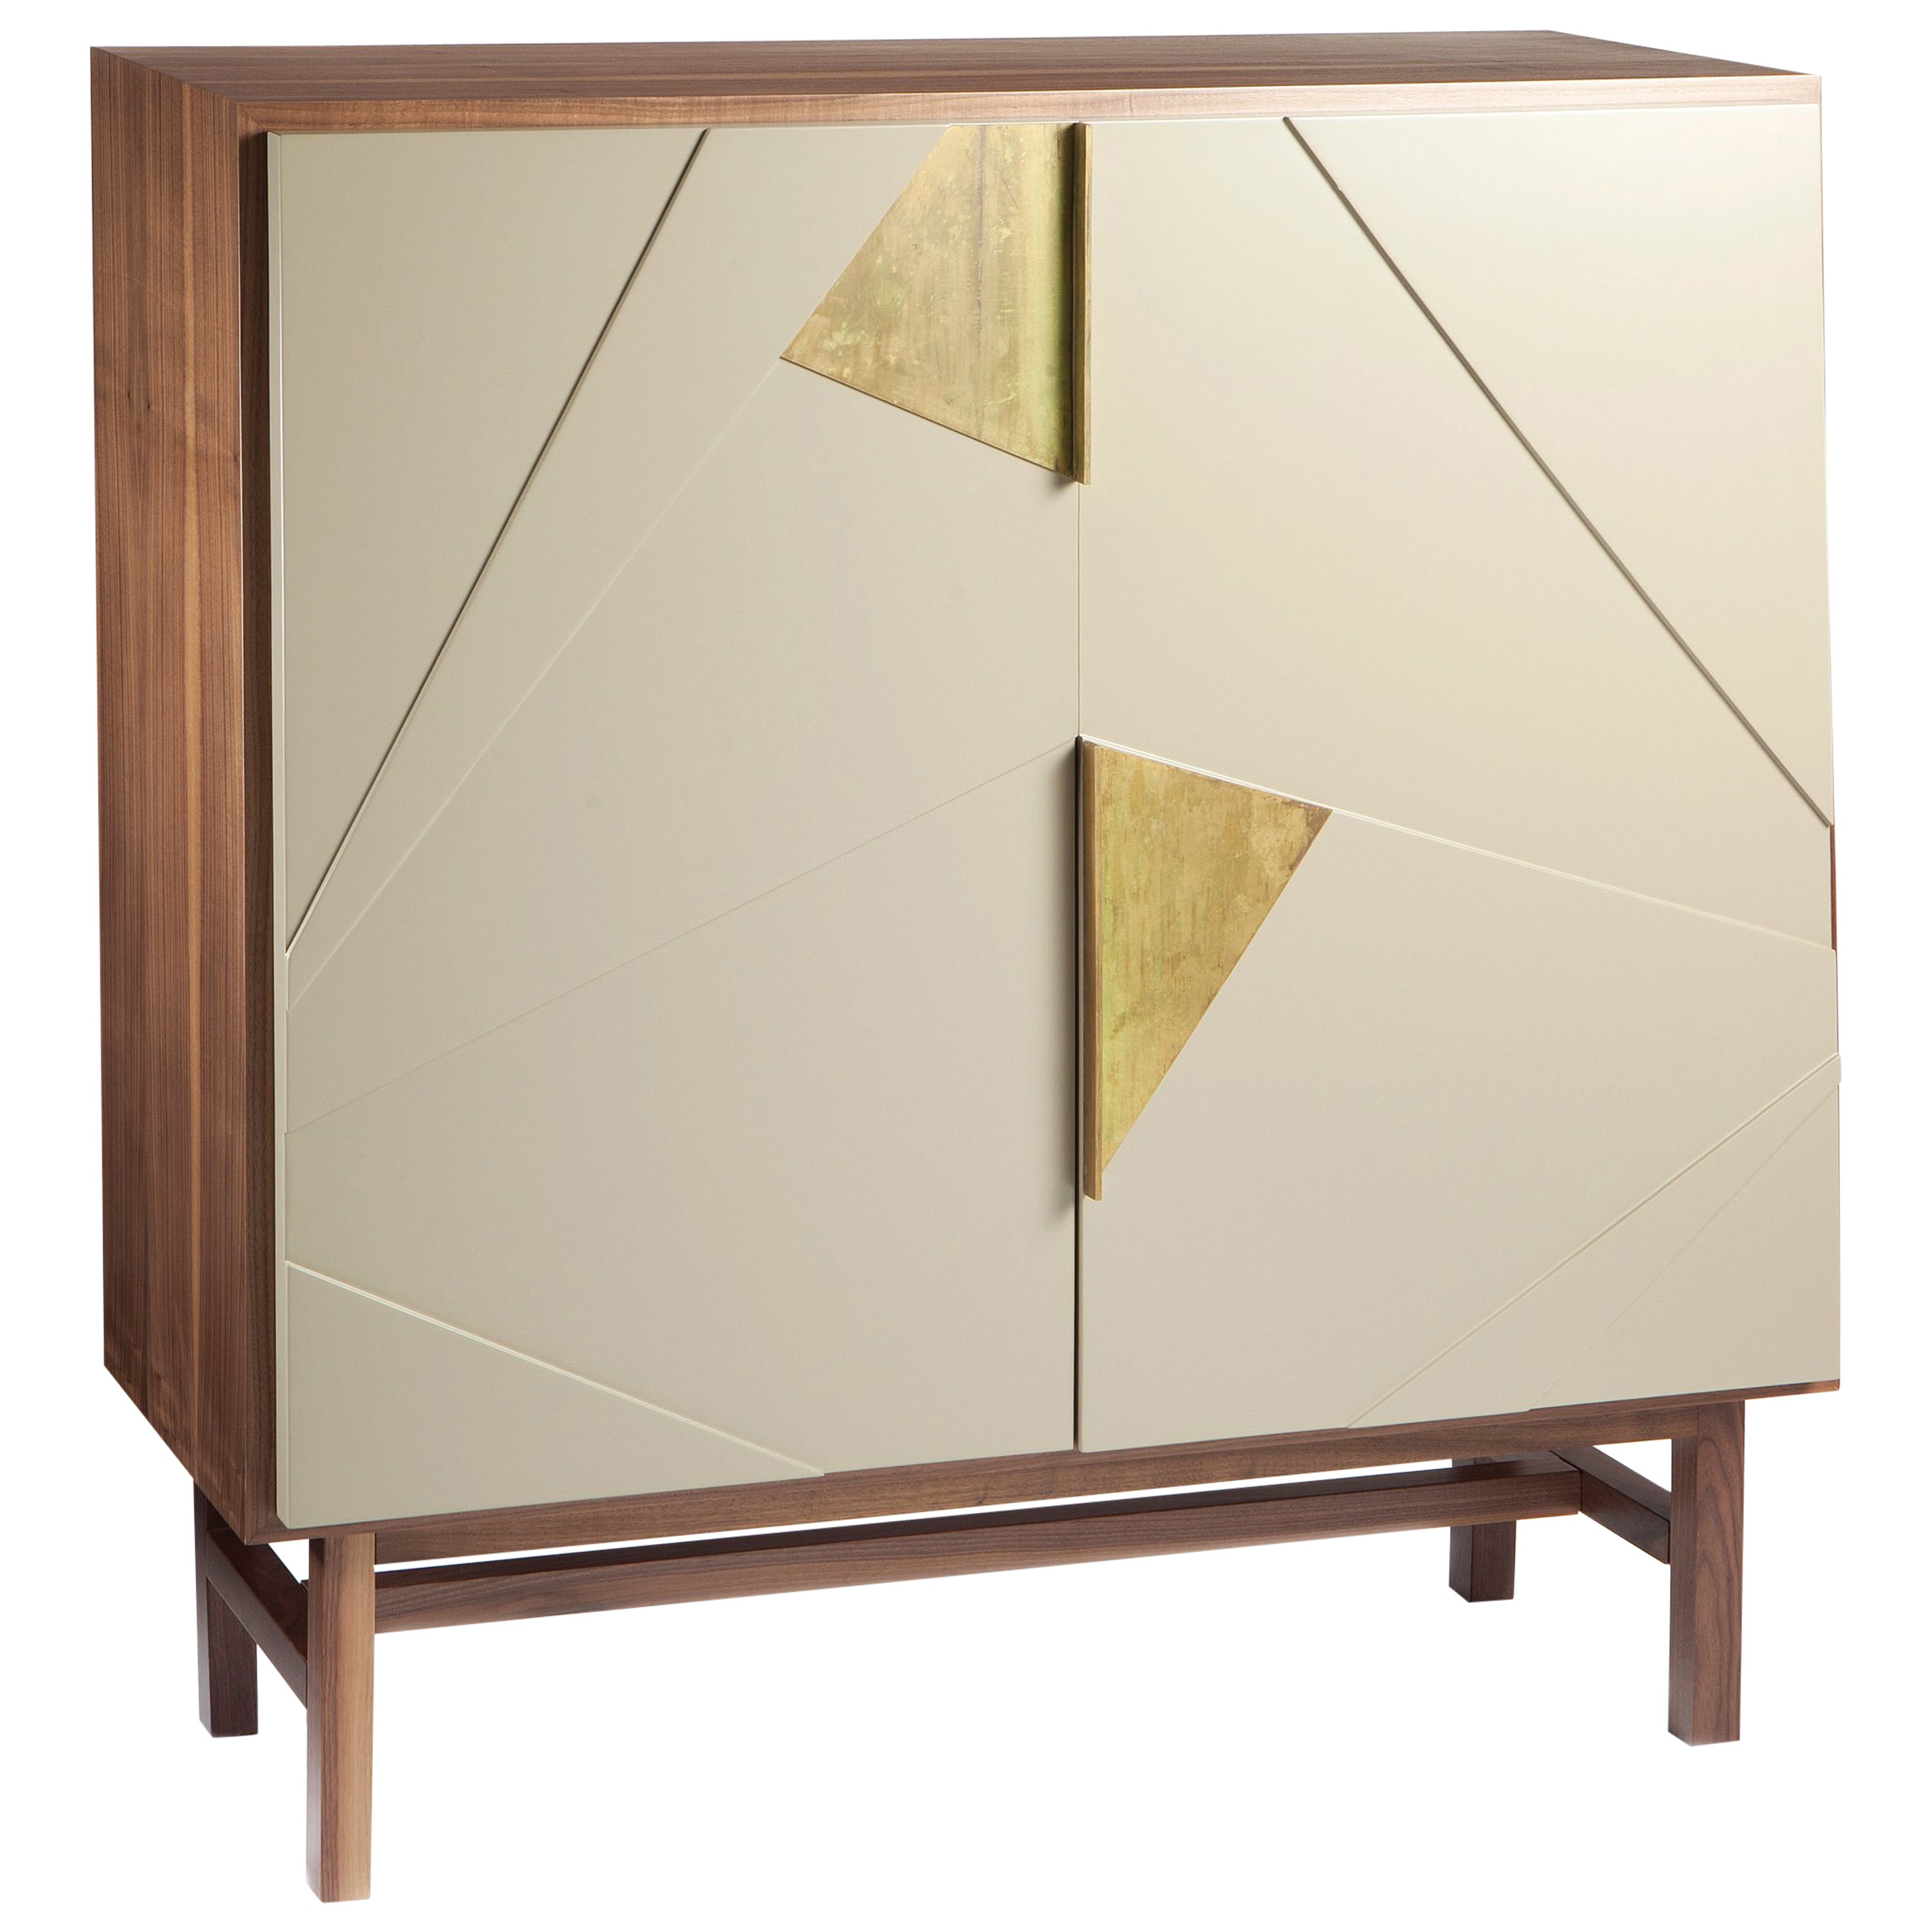 Bar Cabinet Jazz in Wood, Brass and Lacquer